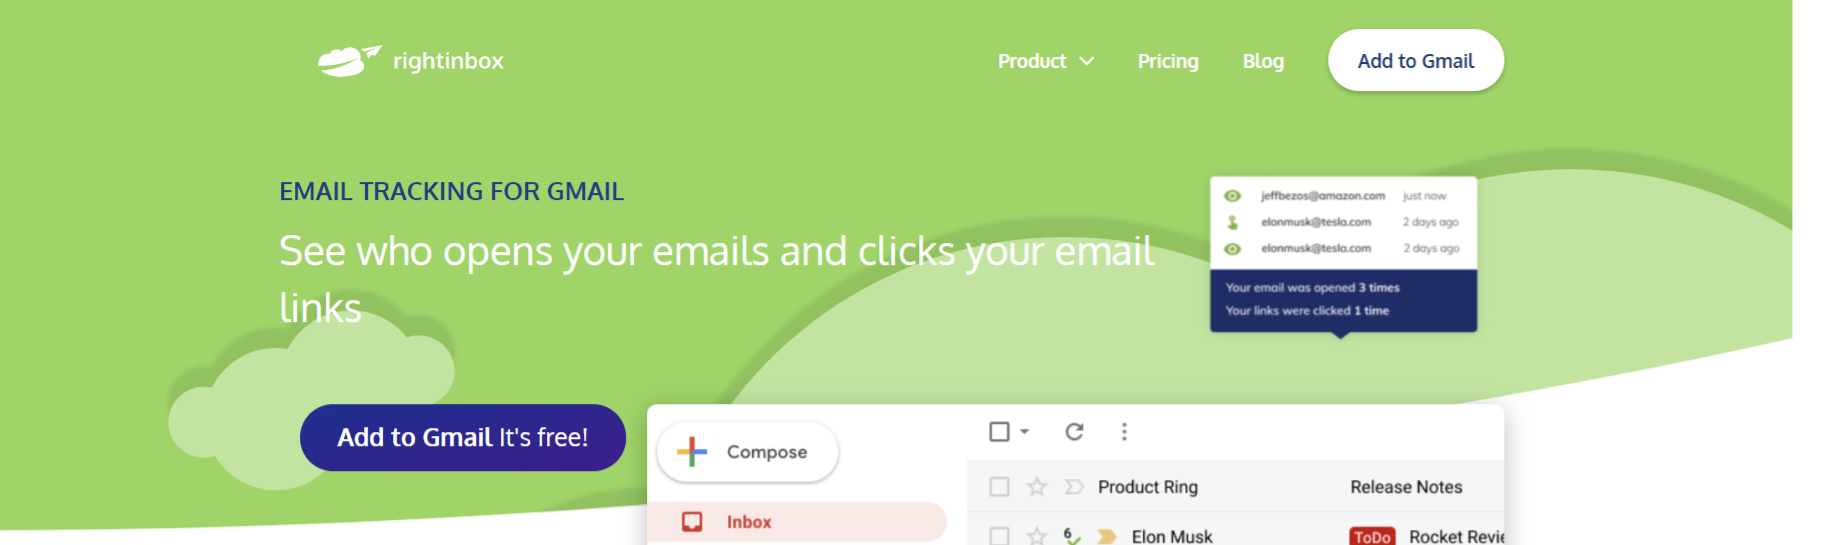 Rightinbox: Email tracking software